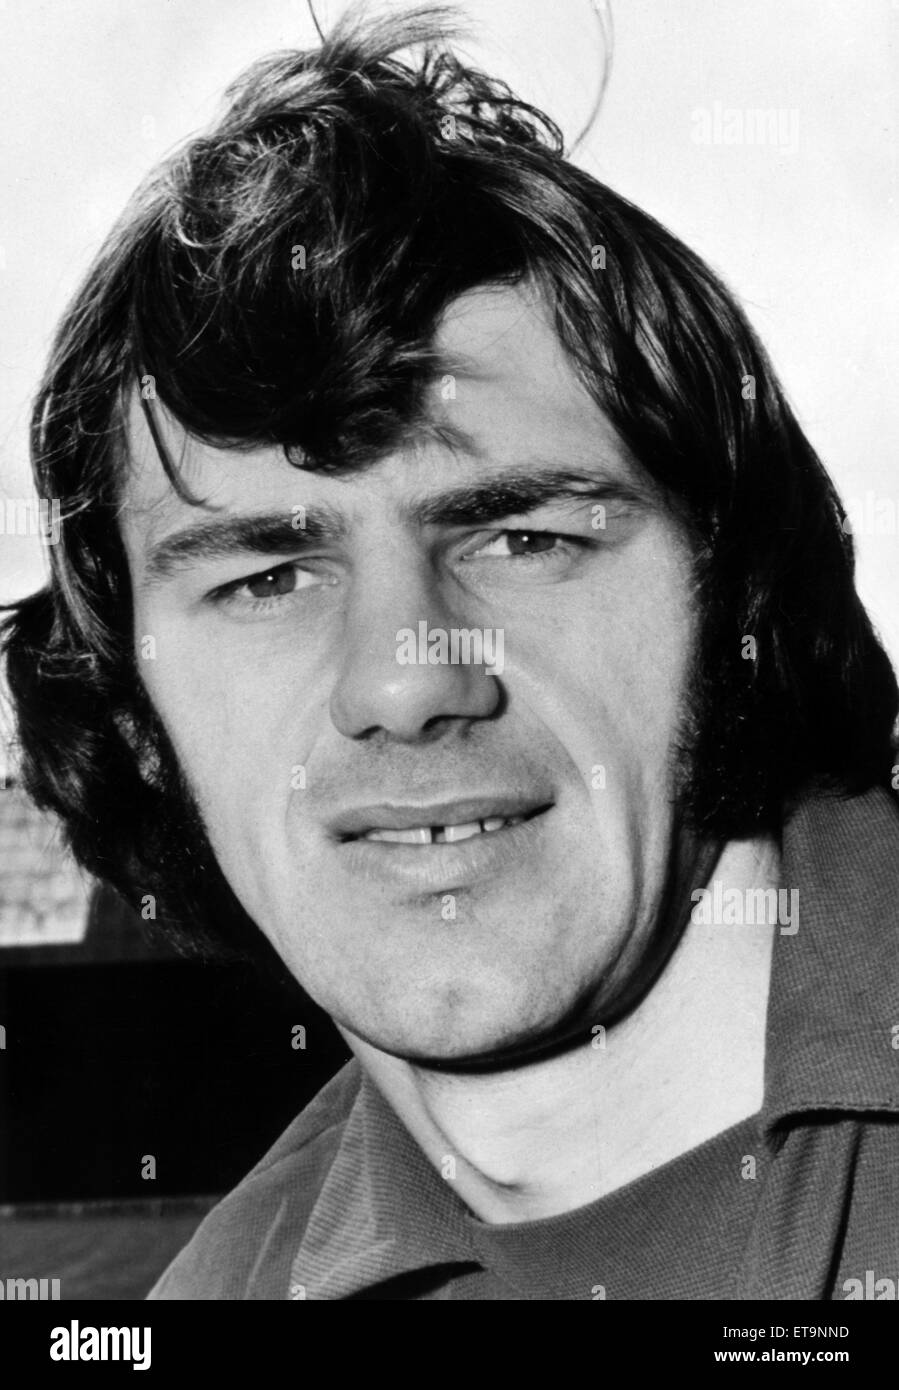 Alan Warboys, Cardiff City Football Player, 1970 - 1972. Pictured, July 1972. - Stock Image